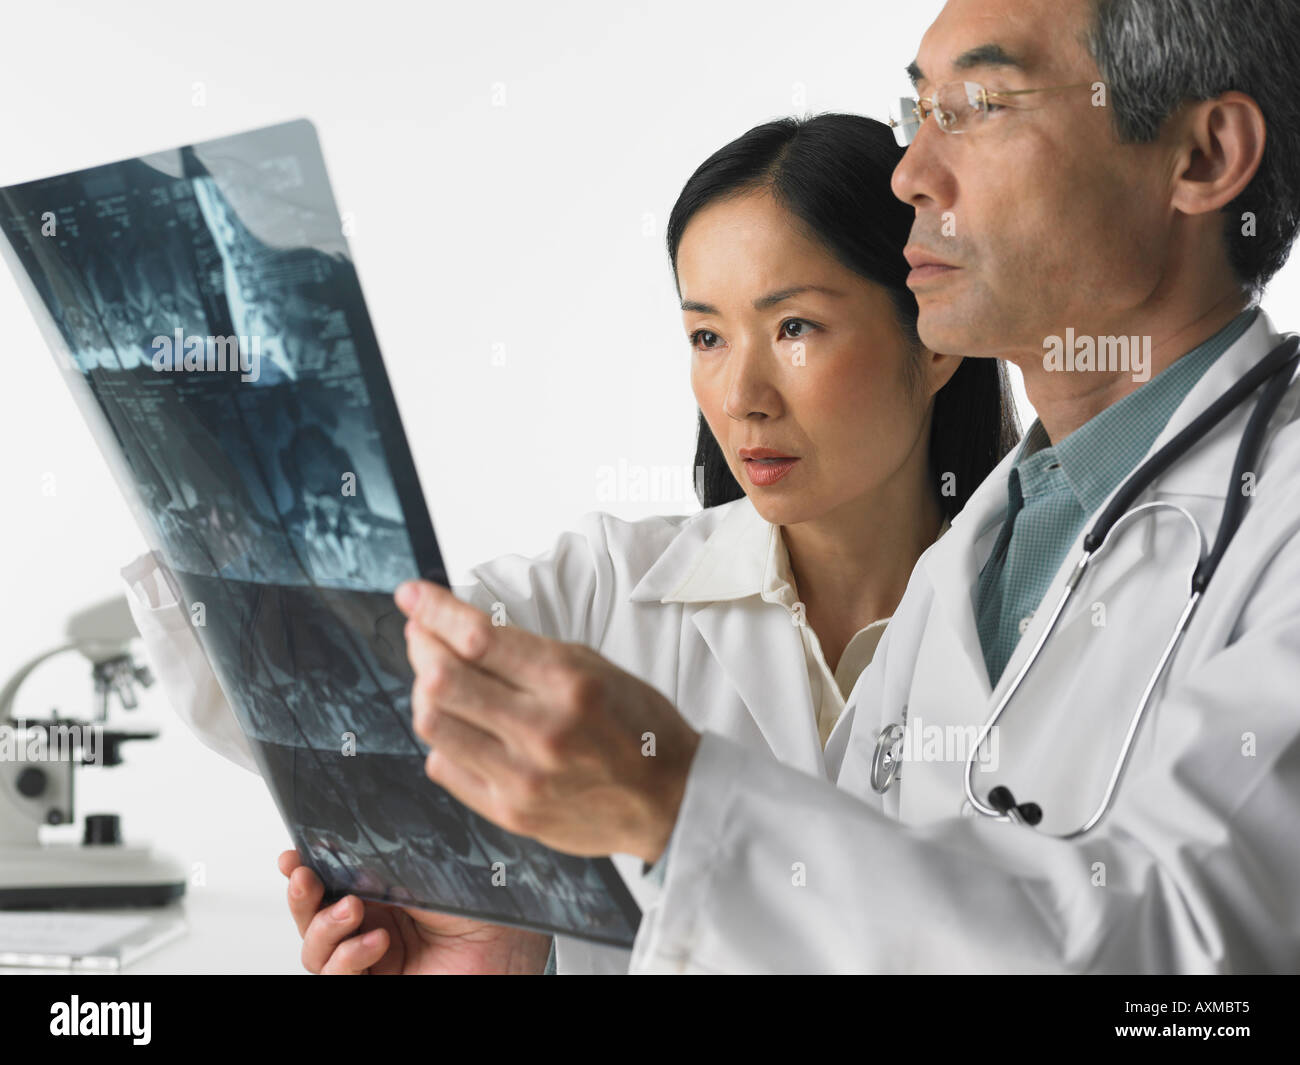 Male and female doctors looking at x rays - Stock Image